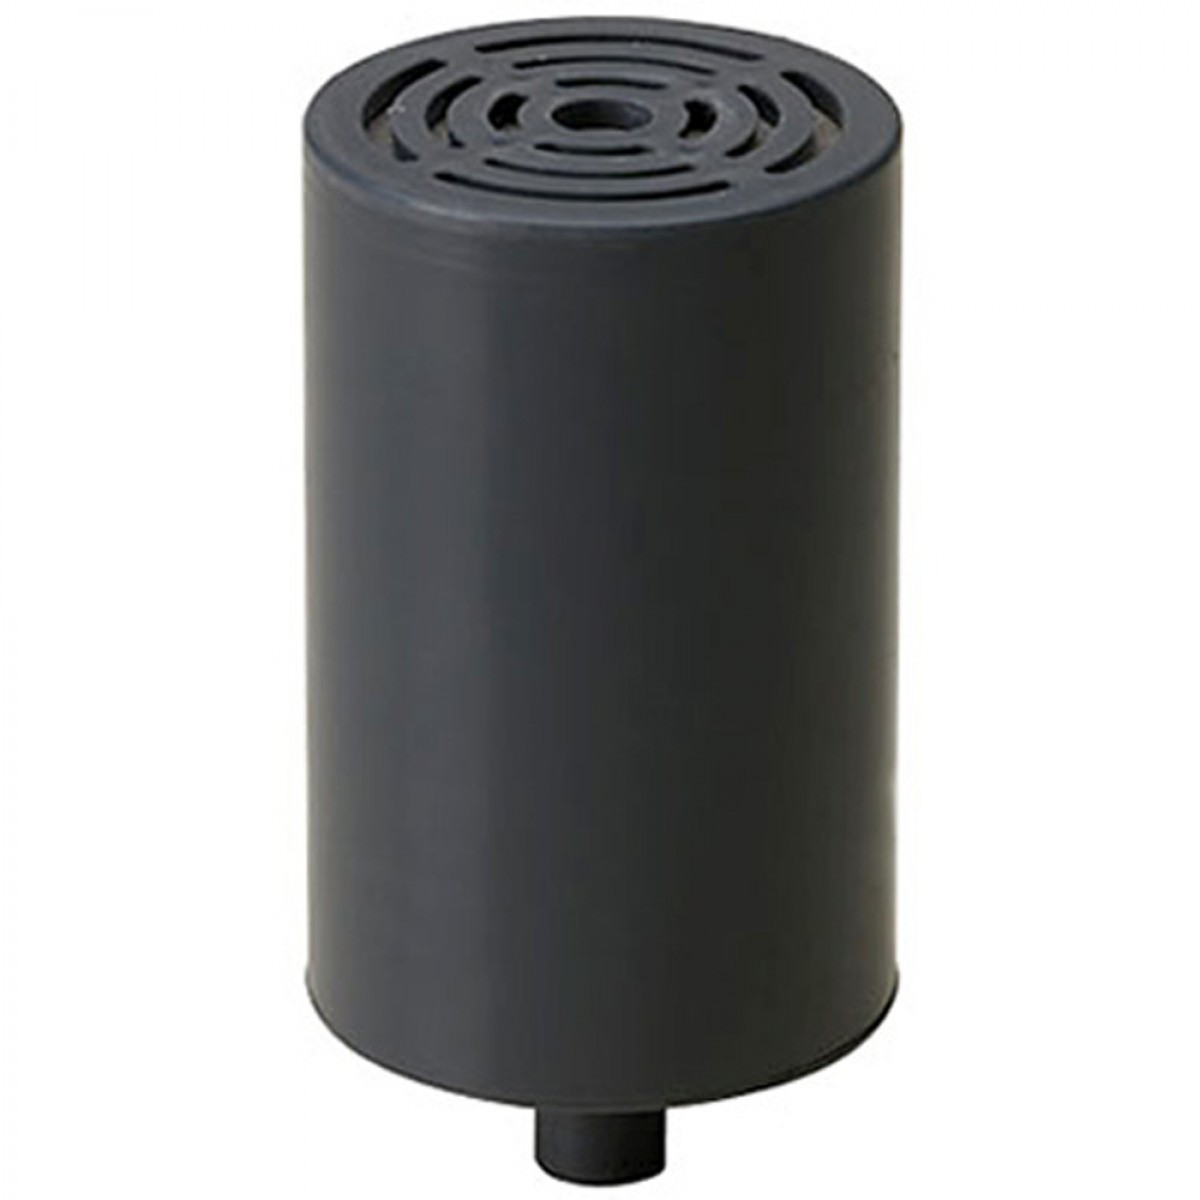 omnifilter sf200r s6 05 replacement shower filter. Black Bedroom Furniture Sets. Home Design Ideas